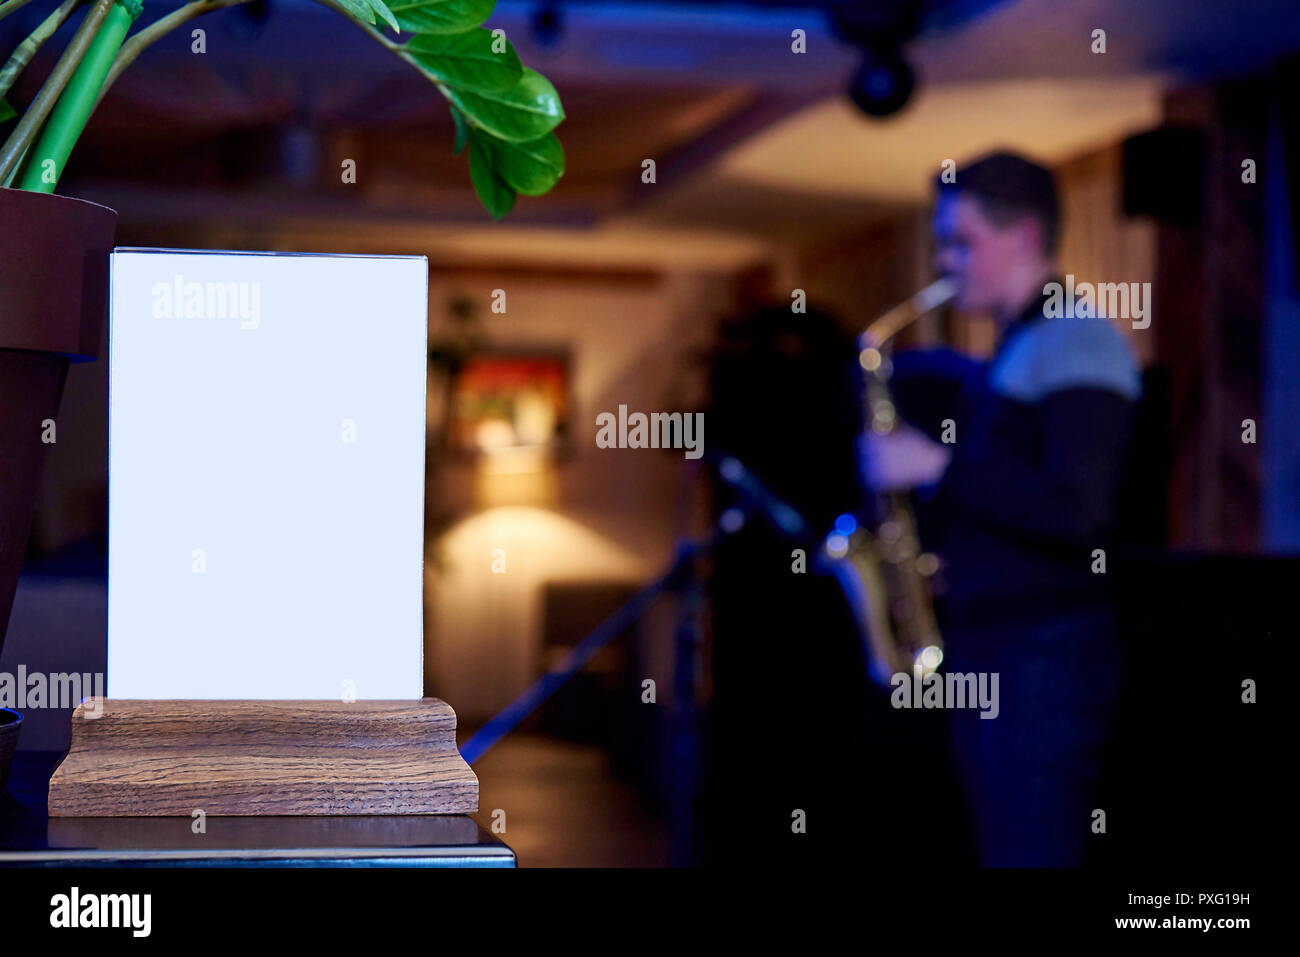 mockup label of an empty frame menu in a restaurant bar stand for